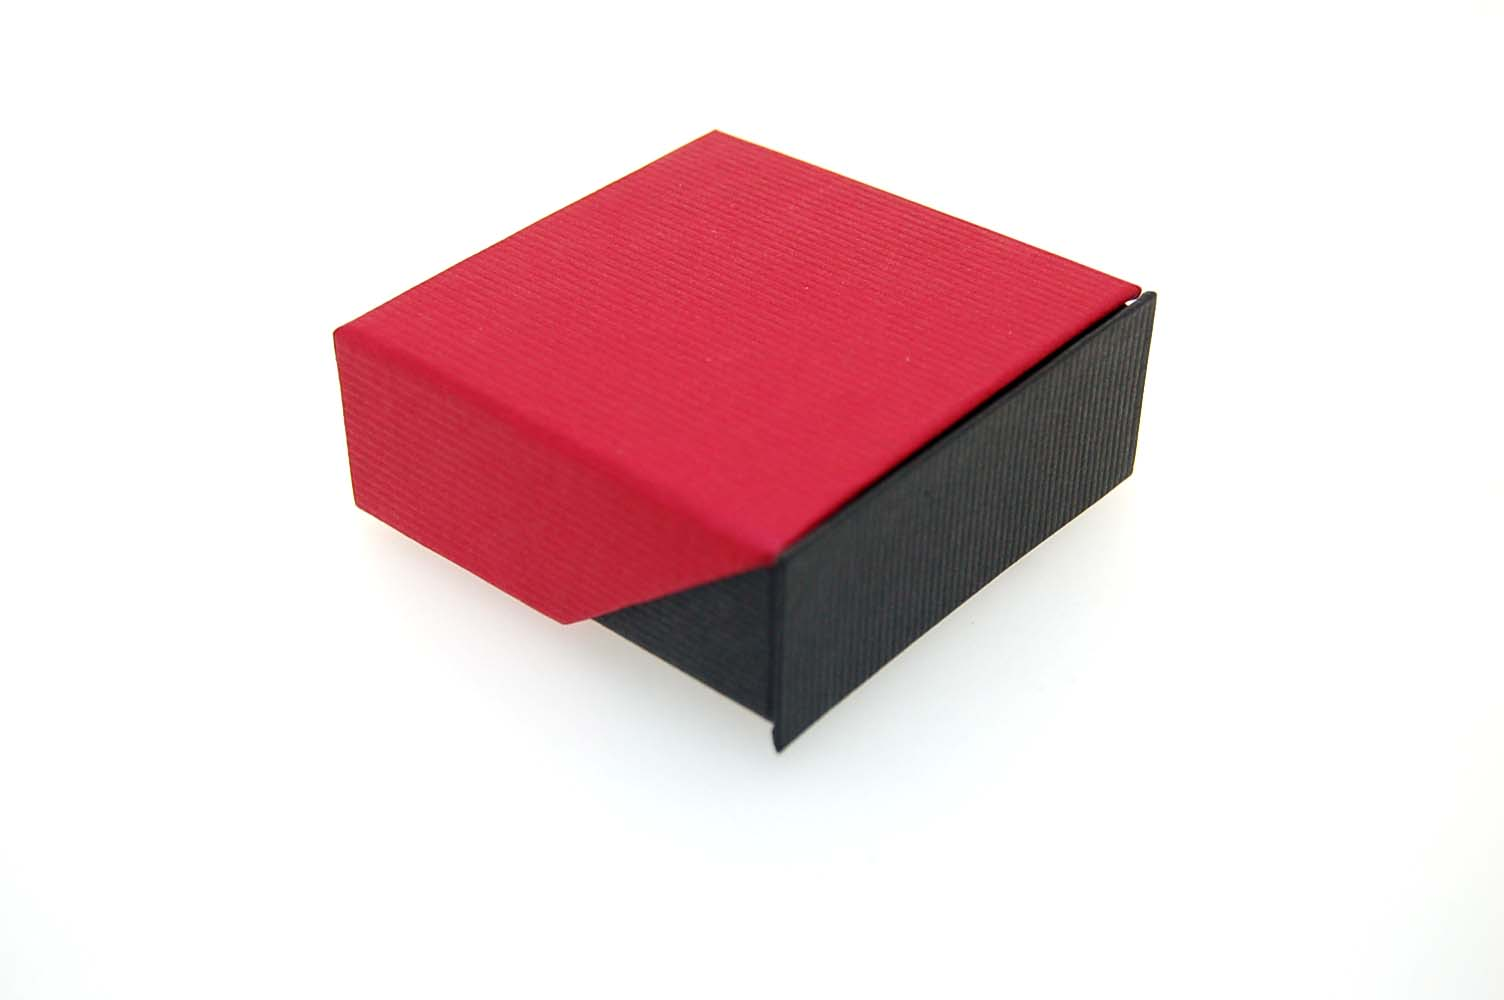 Small Pendant/Earring Box   Retractable Lid   Black and Red